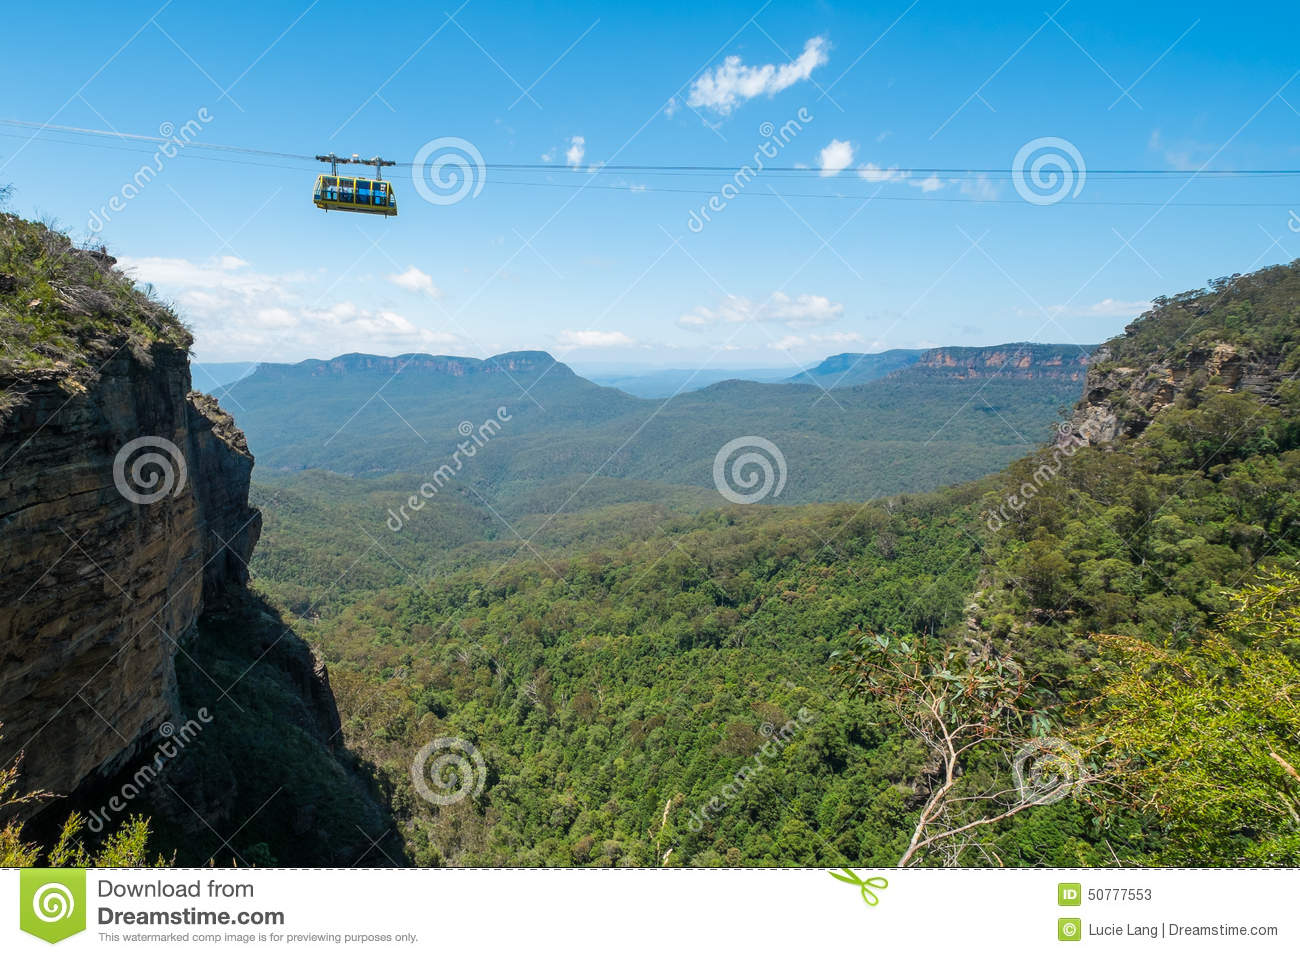 Cable car at Scenic World in the Blue Mountains.